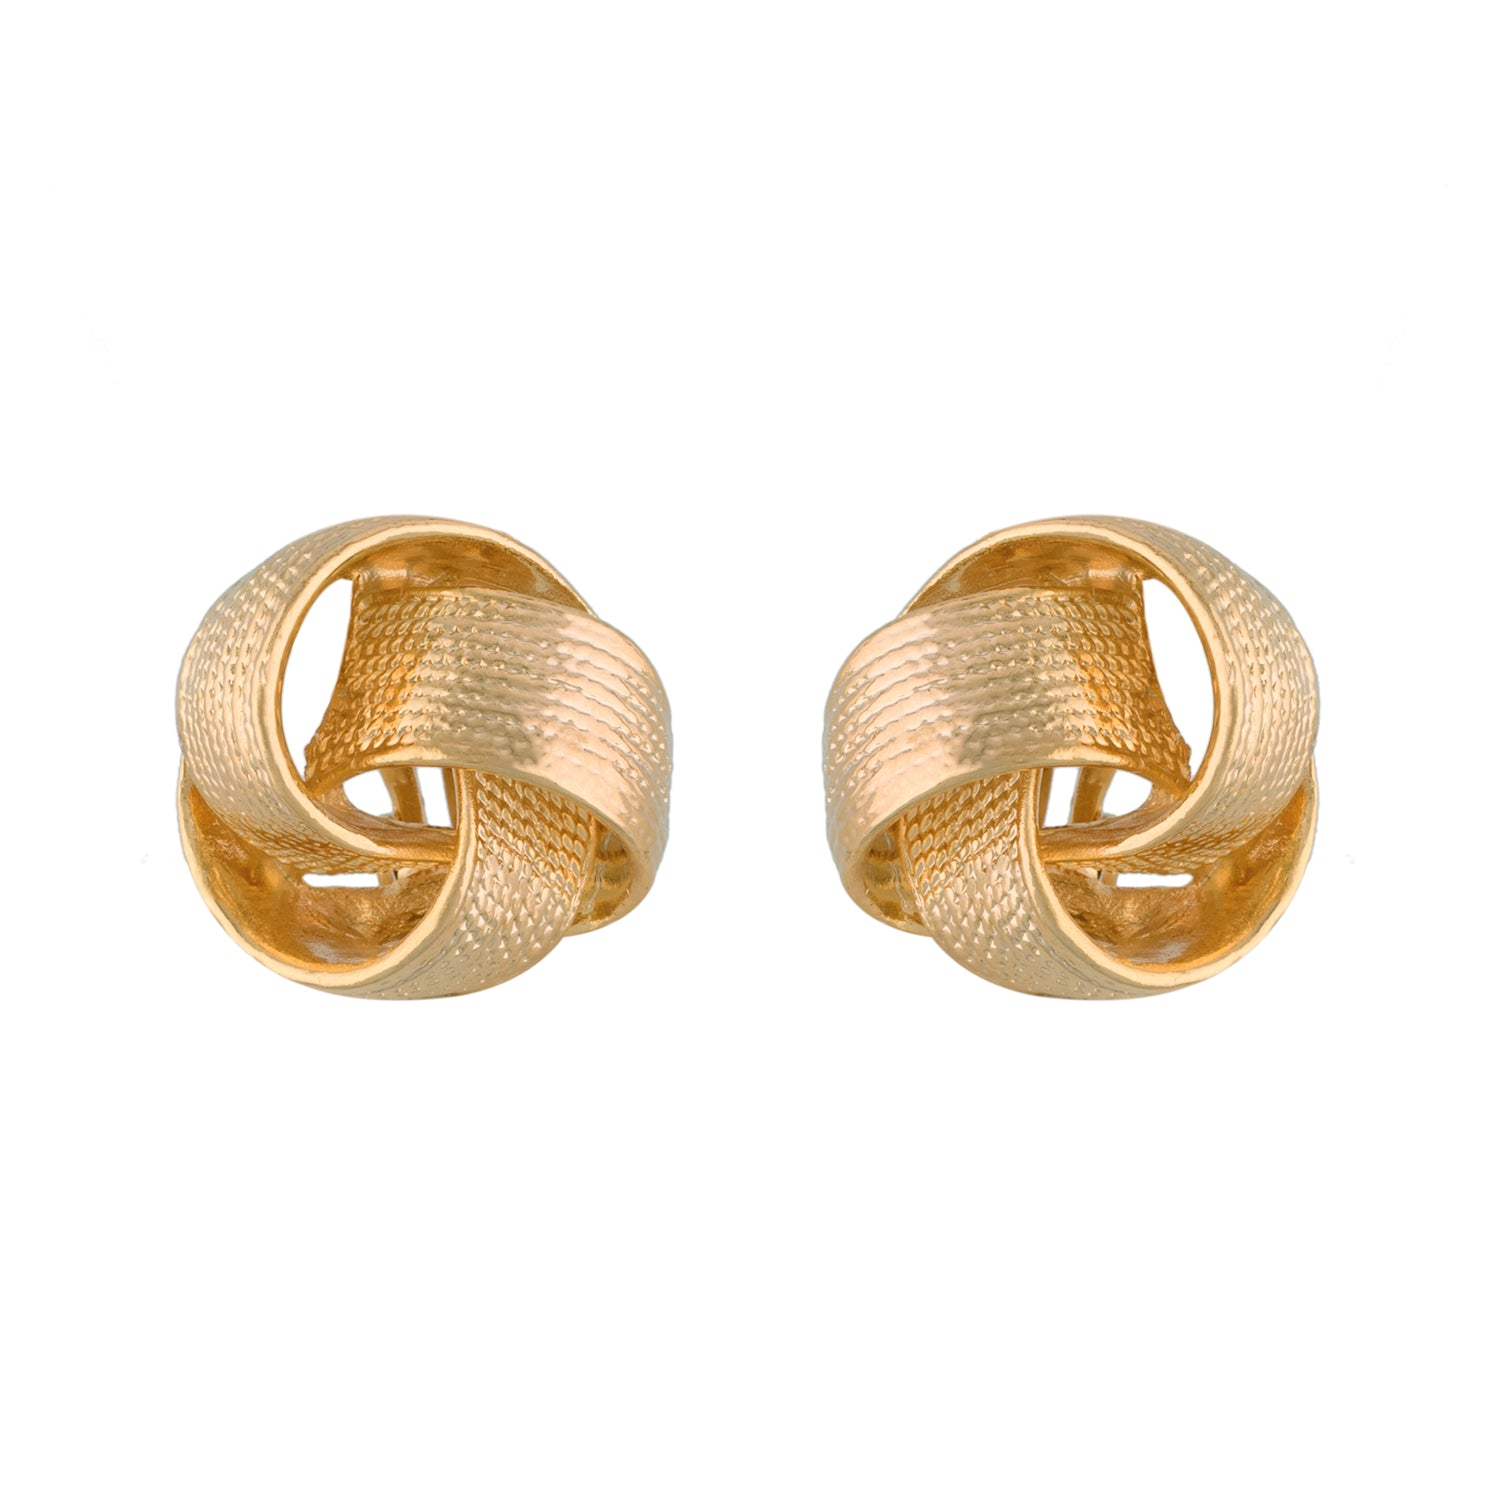 Stunning Gold Colour Alloy Clip On Earrings for Girls